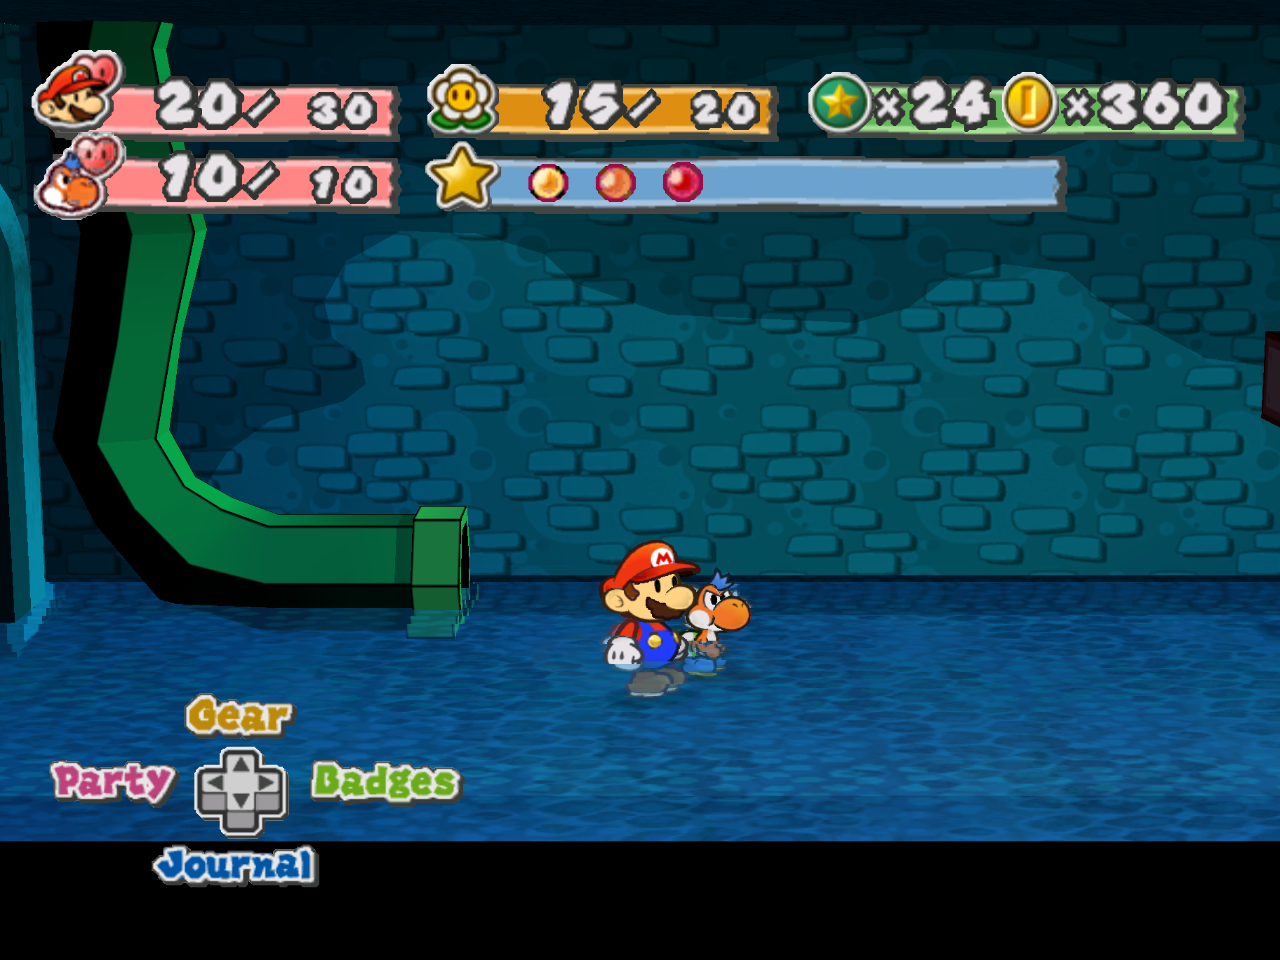 Dolphin Emulator - Best Core Changes of 2014